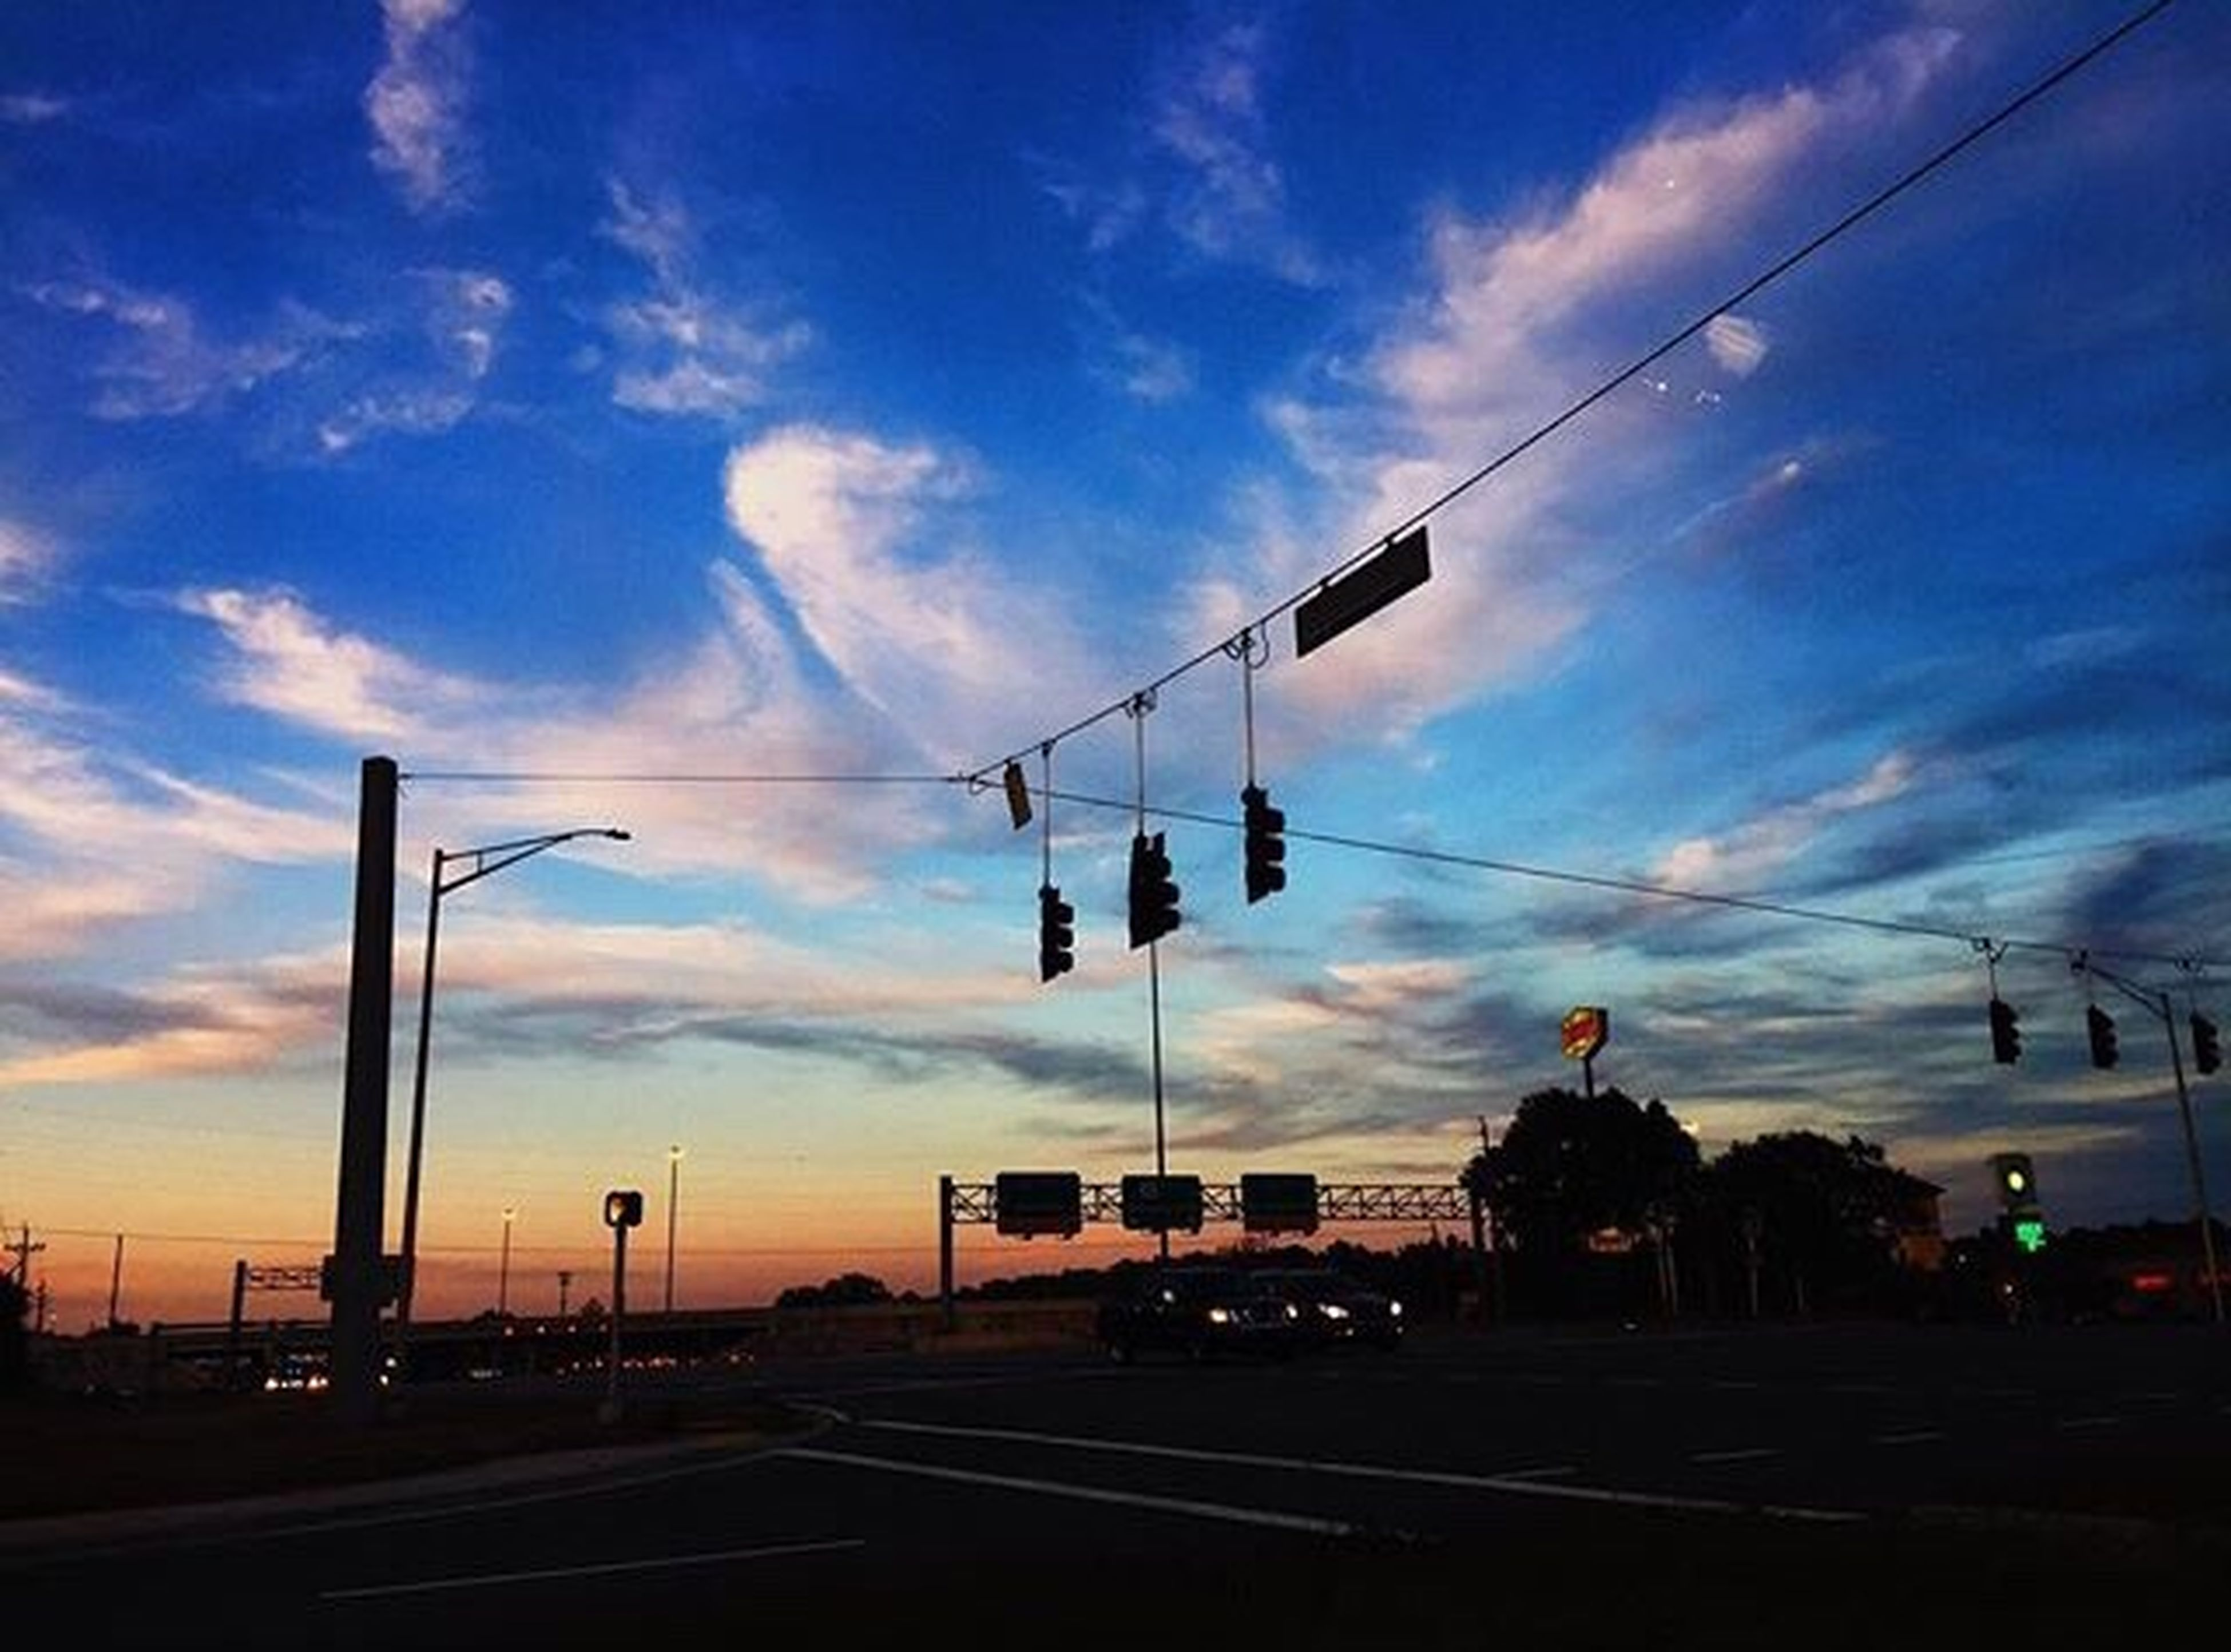 cloud - sky, sky, transportation, cable, car, stoplight, road, built structure, sunset, architecture, building exterior, silhouette, outdoors, city, street light, road sign, day, no people, telephone line